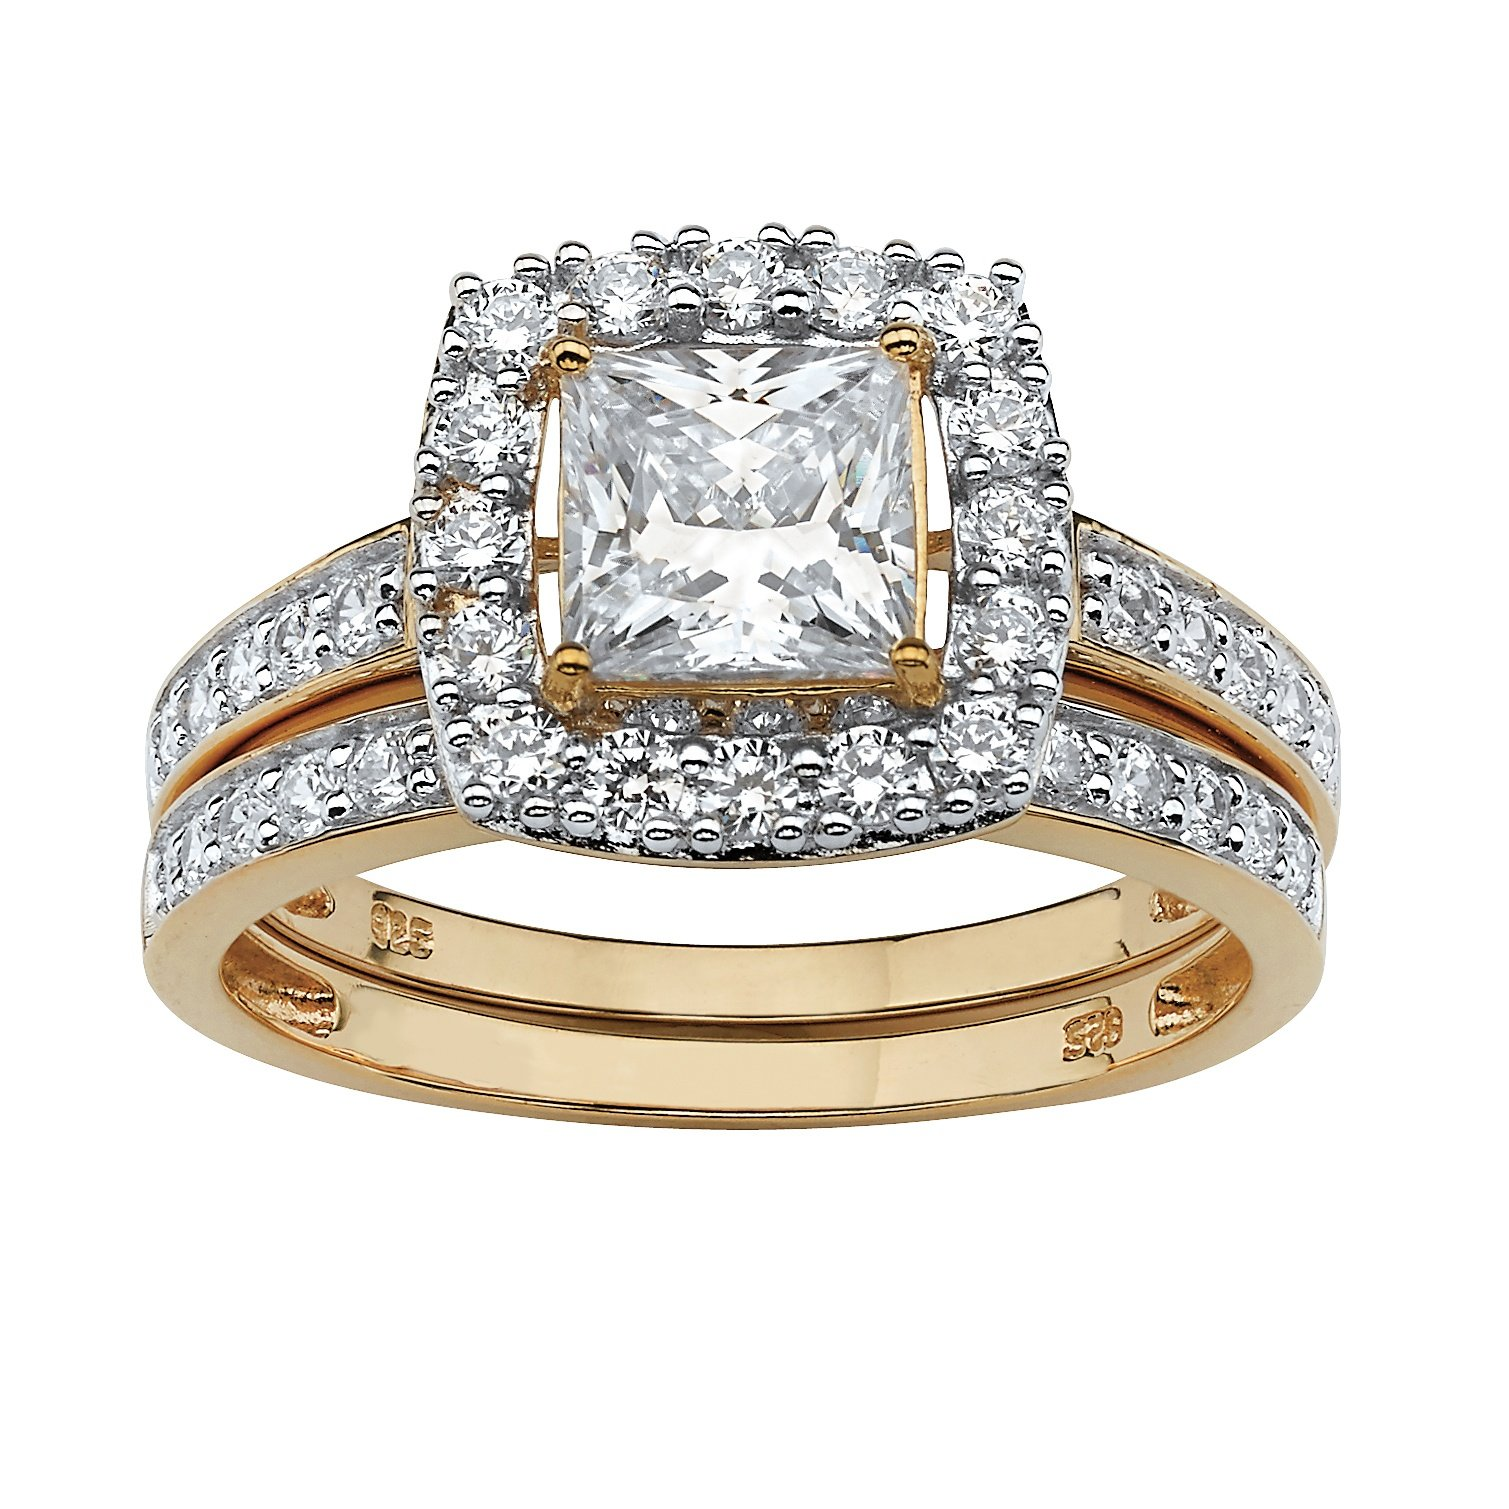 18K Yellow Gold over Sterling Silver Princess Cut Cubic Zirconia Halo Bridal Ring Set Size 7